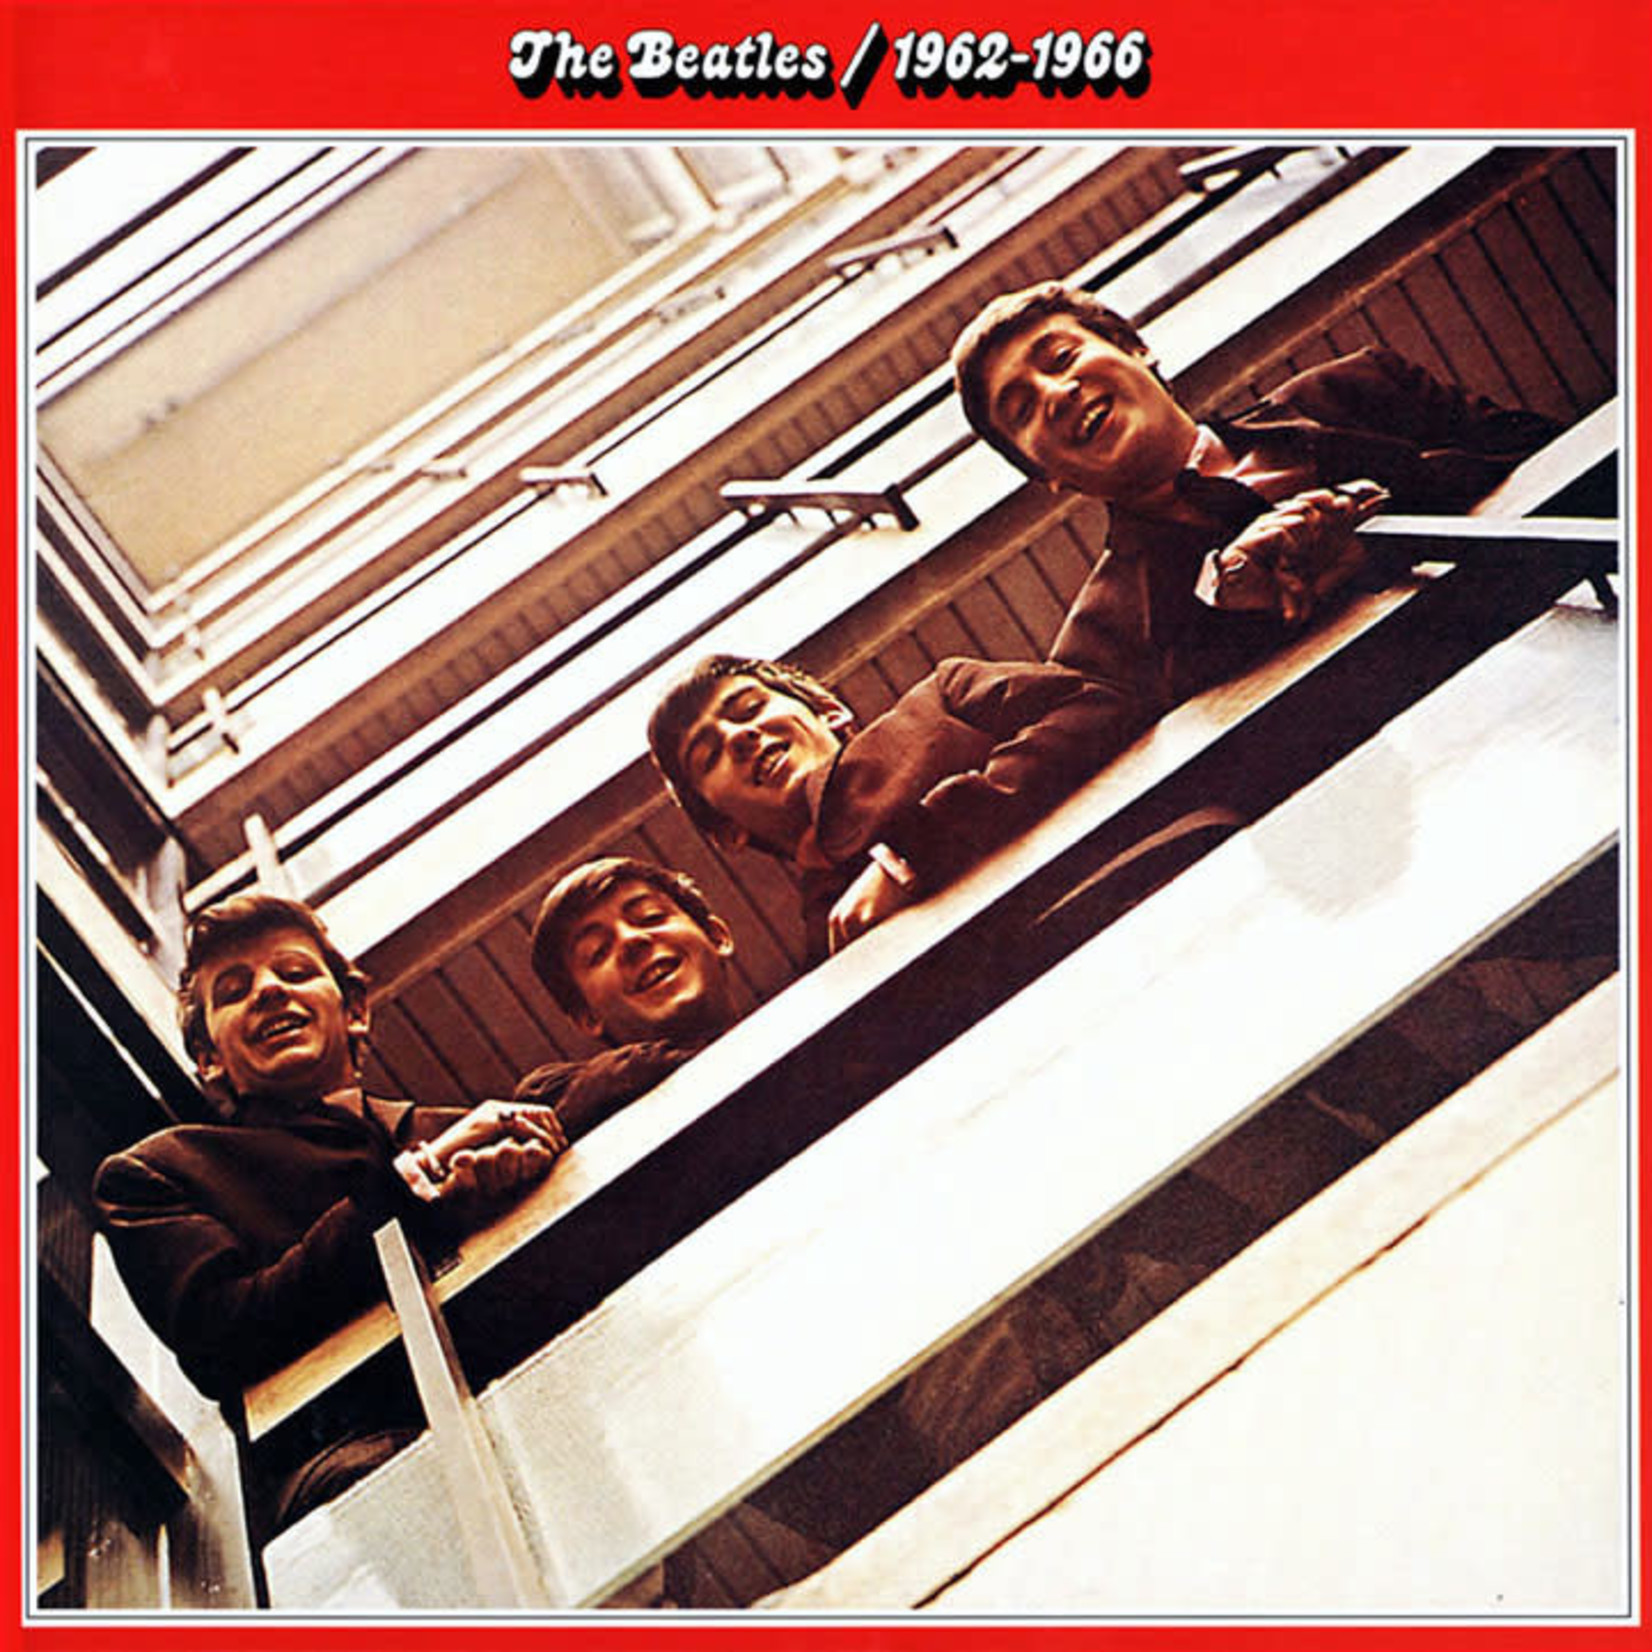 [Vintage] Beatles: 1962-1966 (red cover)